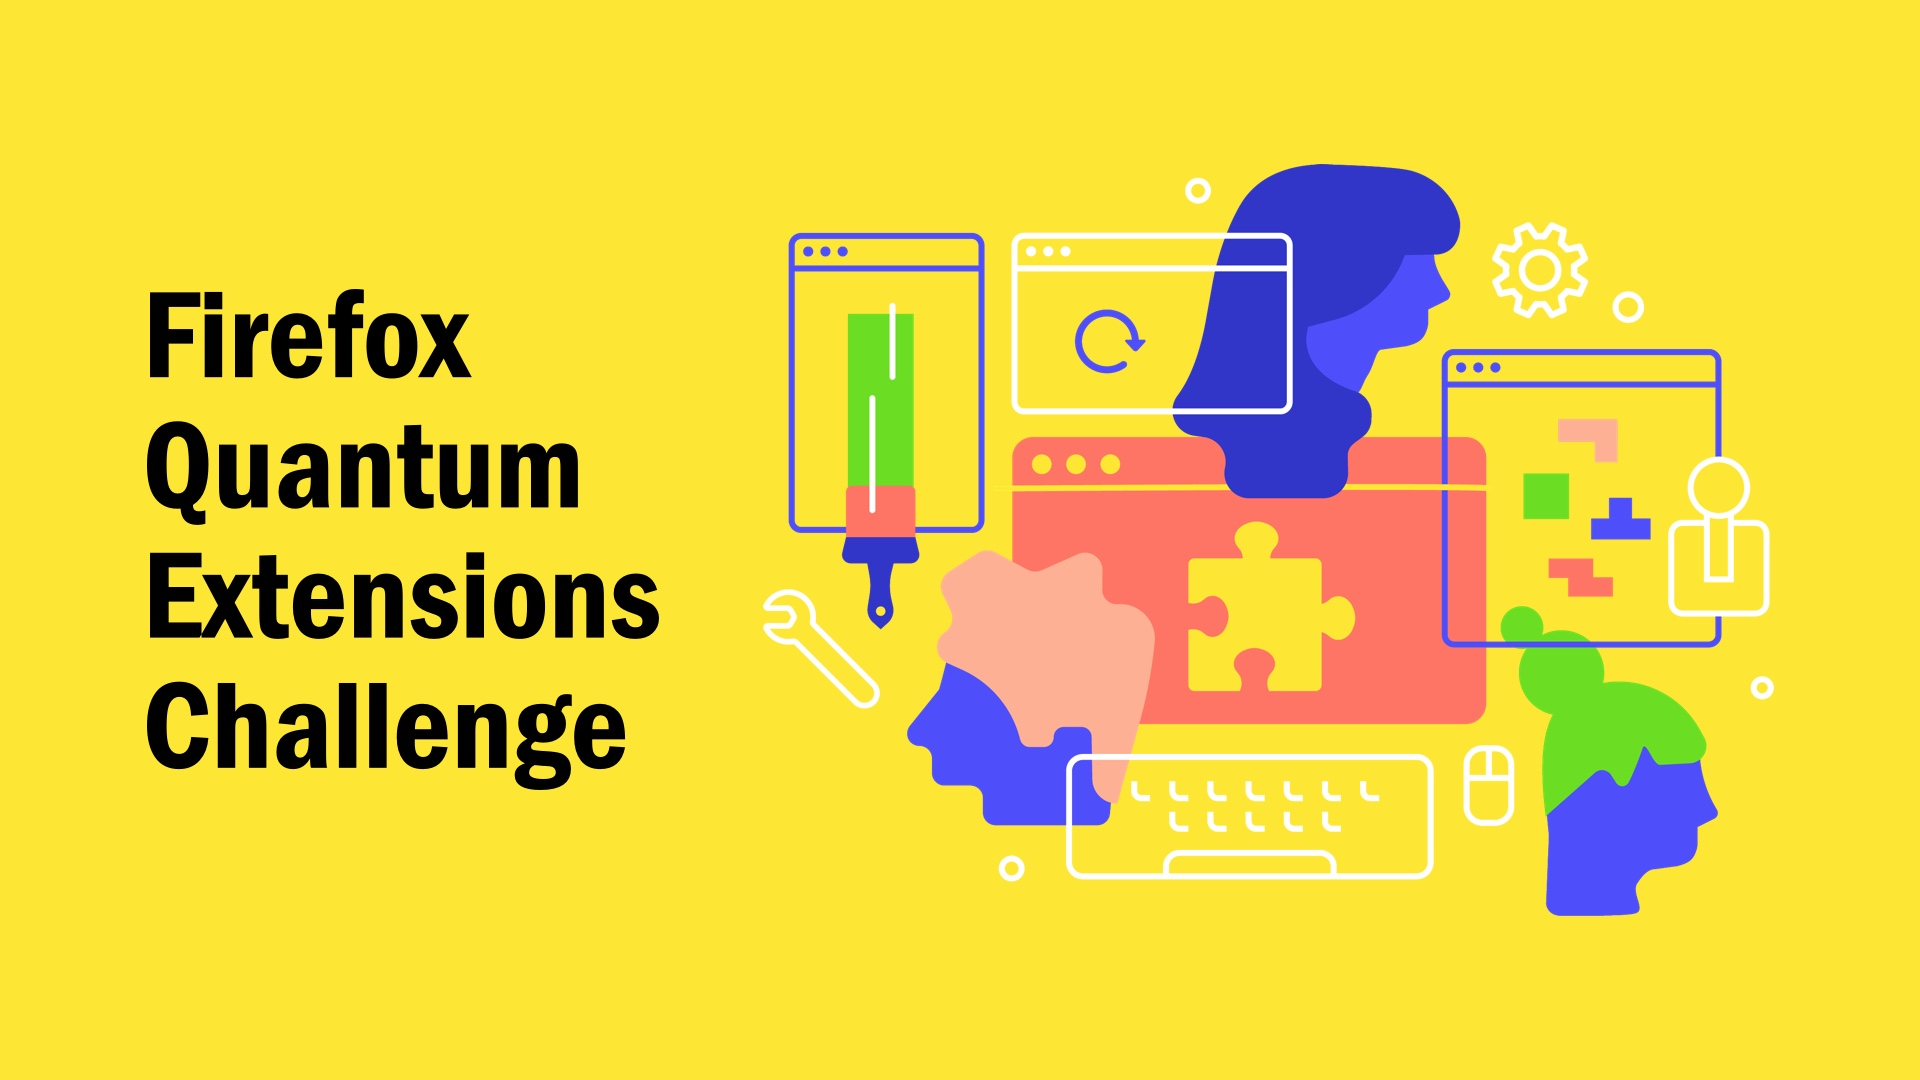 Firefox Quantum Look >> Firefox Quantum Extensions Challenge Winners Announced! | The Firefox Frontier